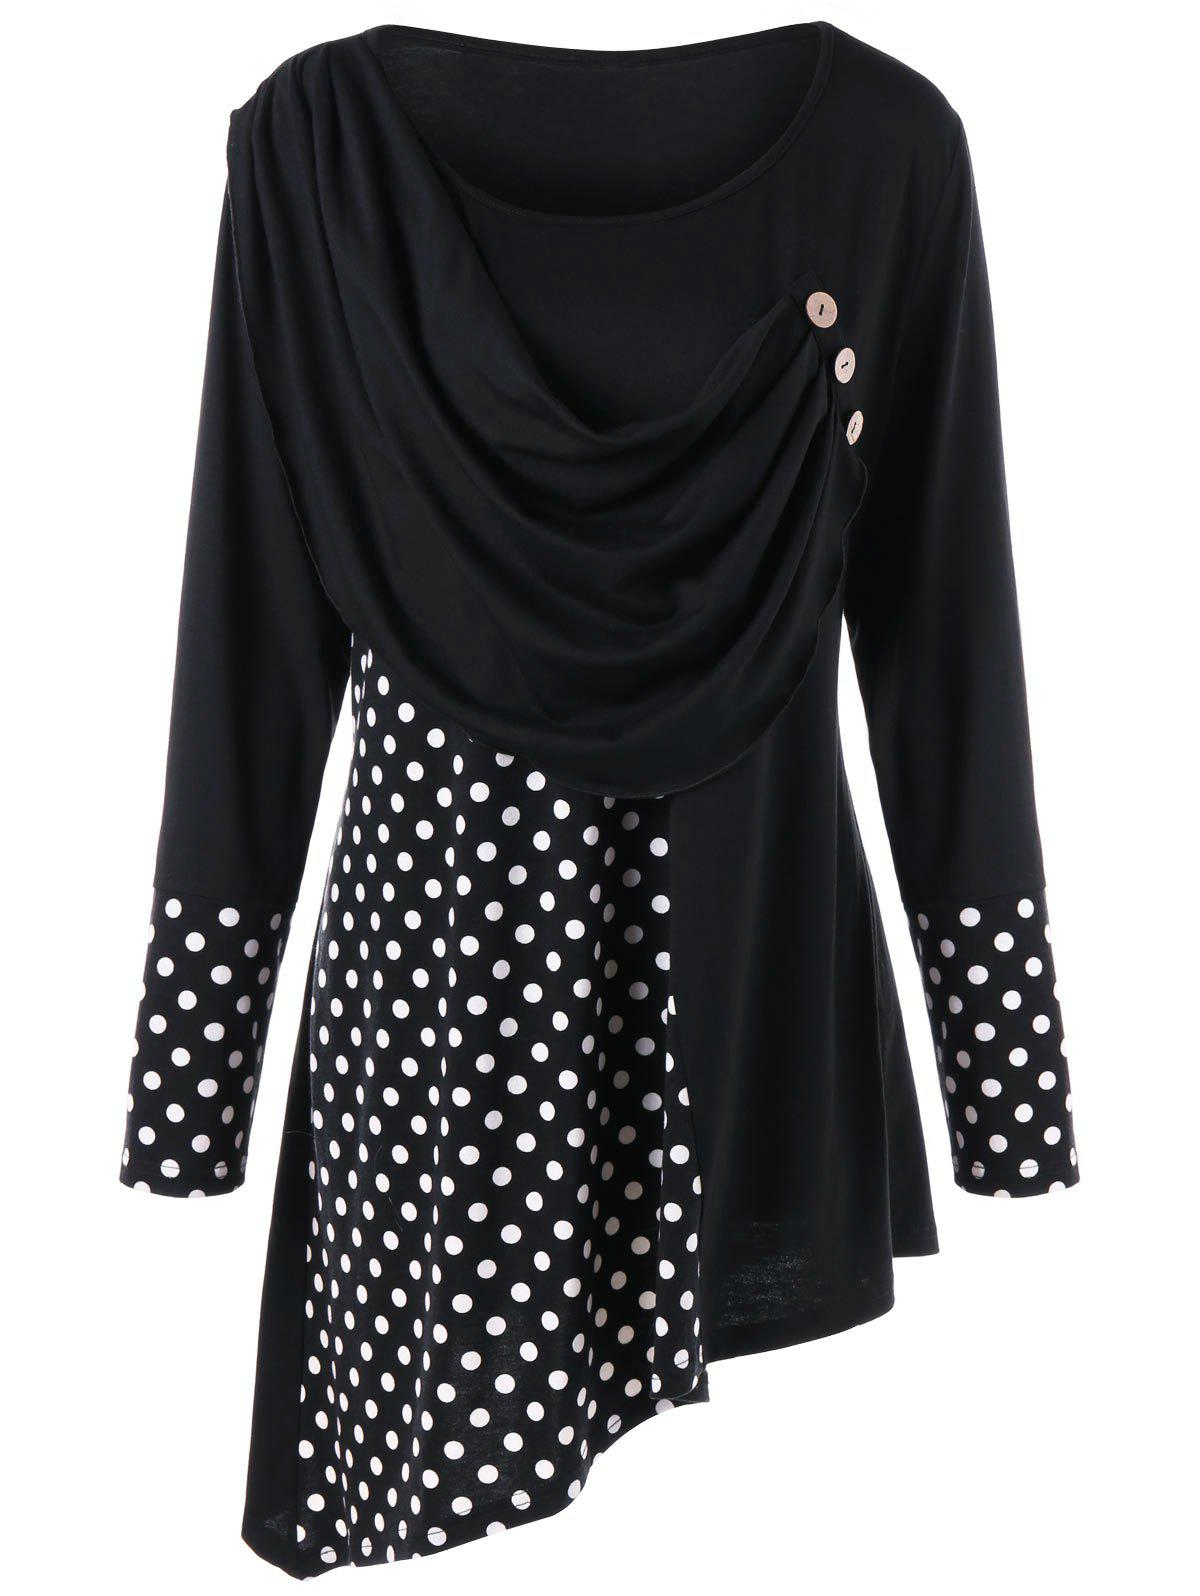 Plus Size Polka Dot Ruched Asymmetric Top - BLACK 4XL